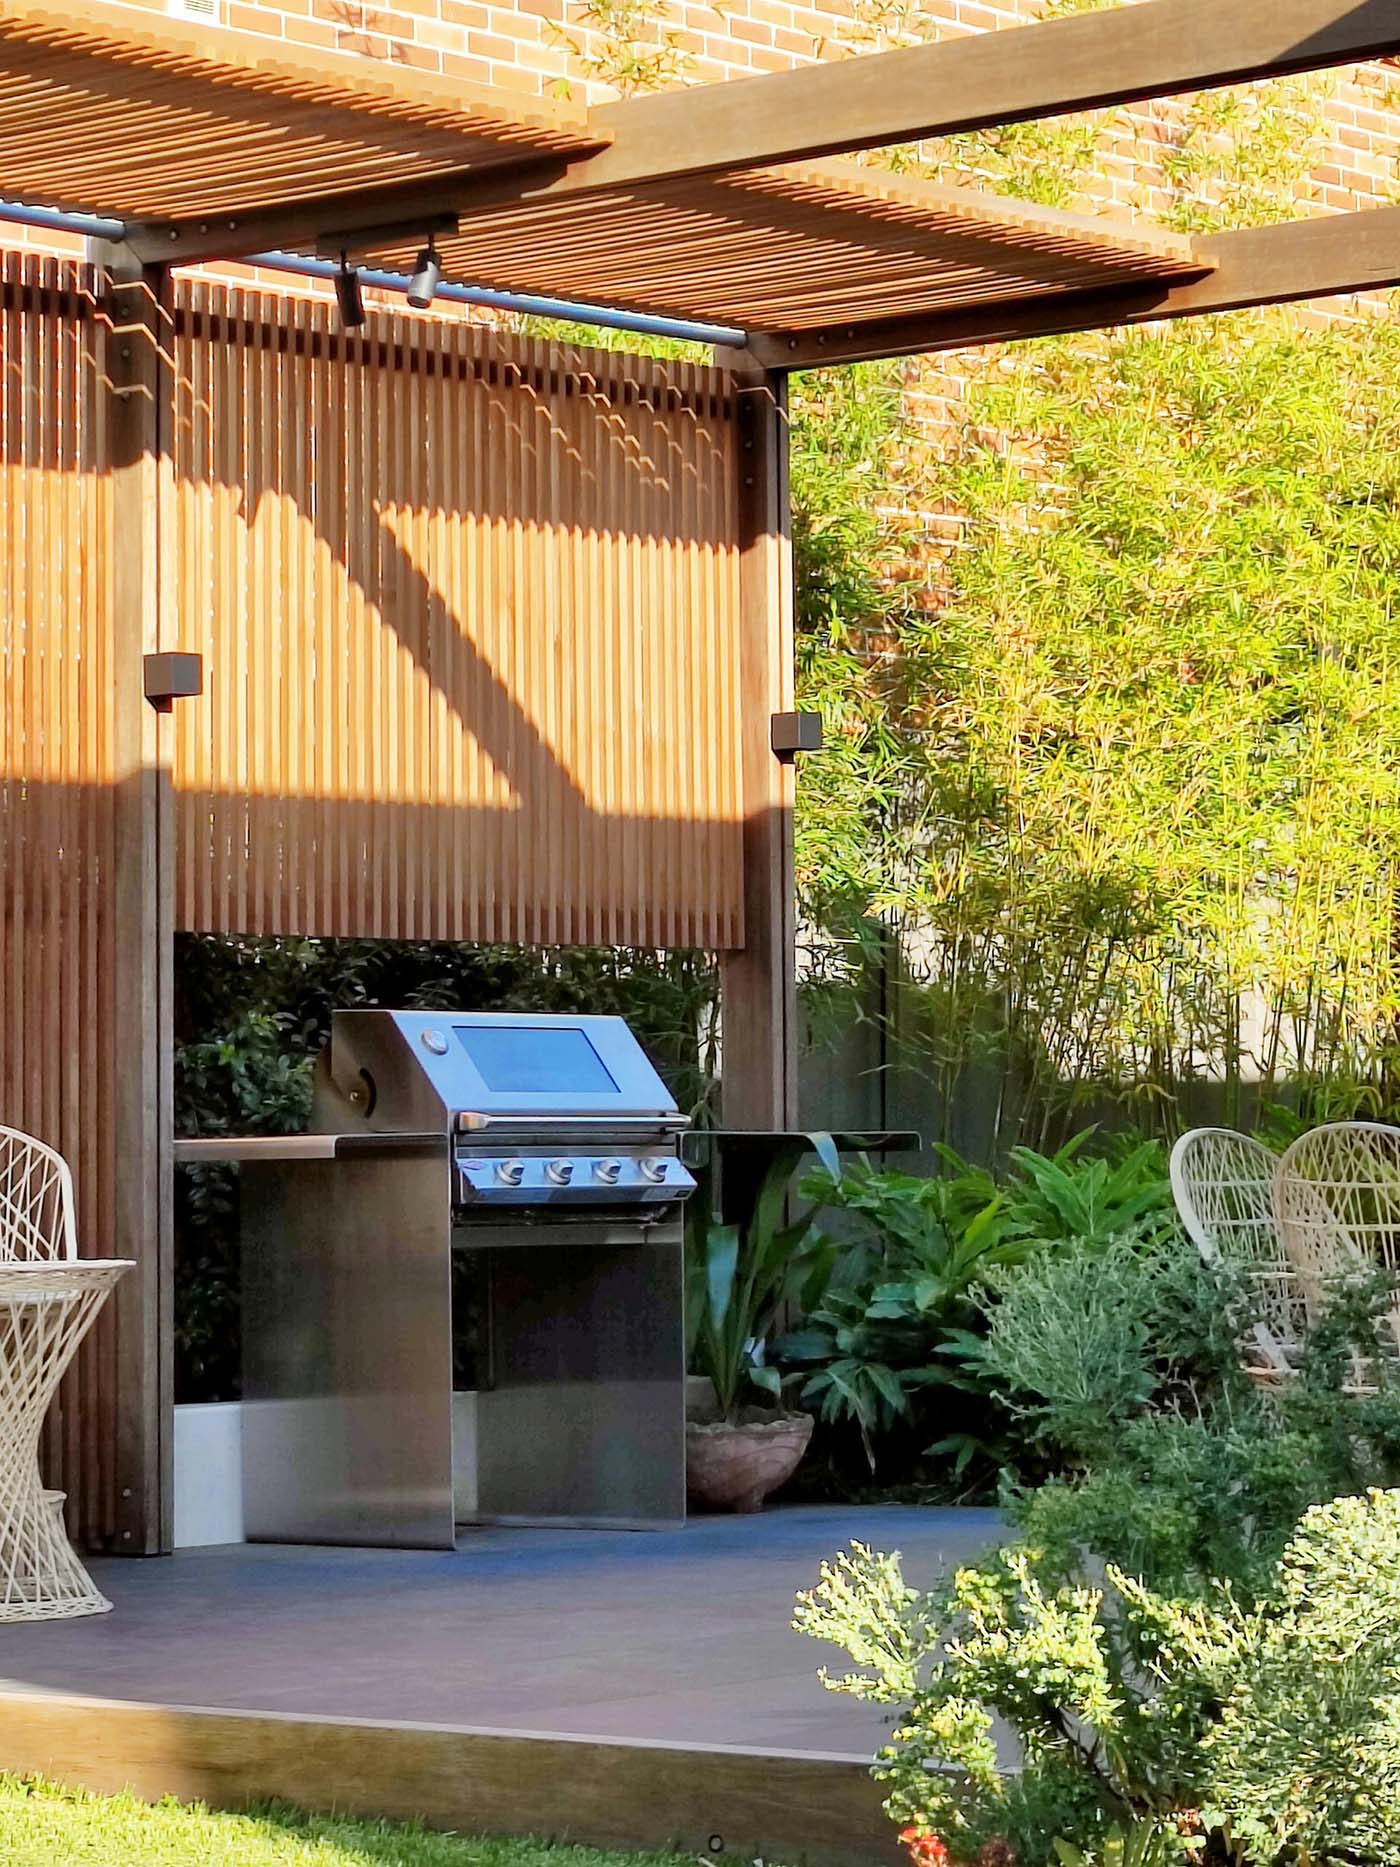 A modern partially covered outdoor bbq area.